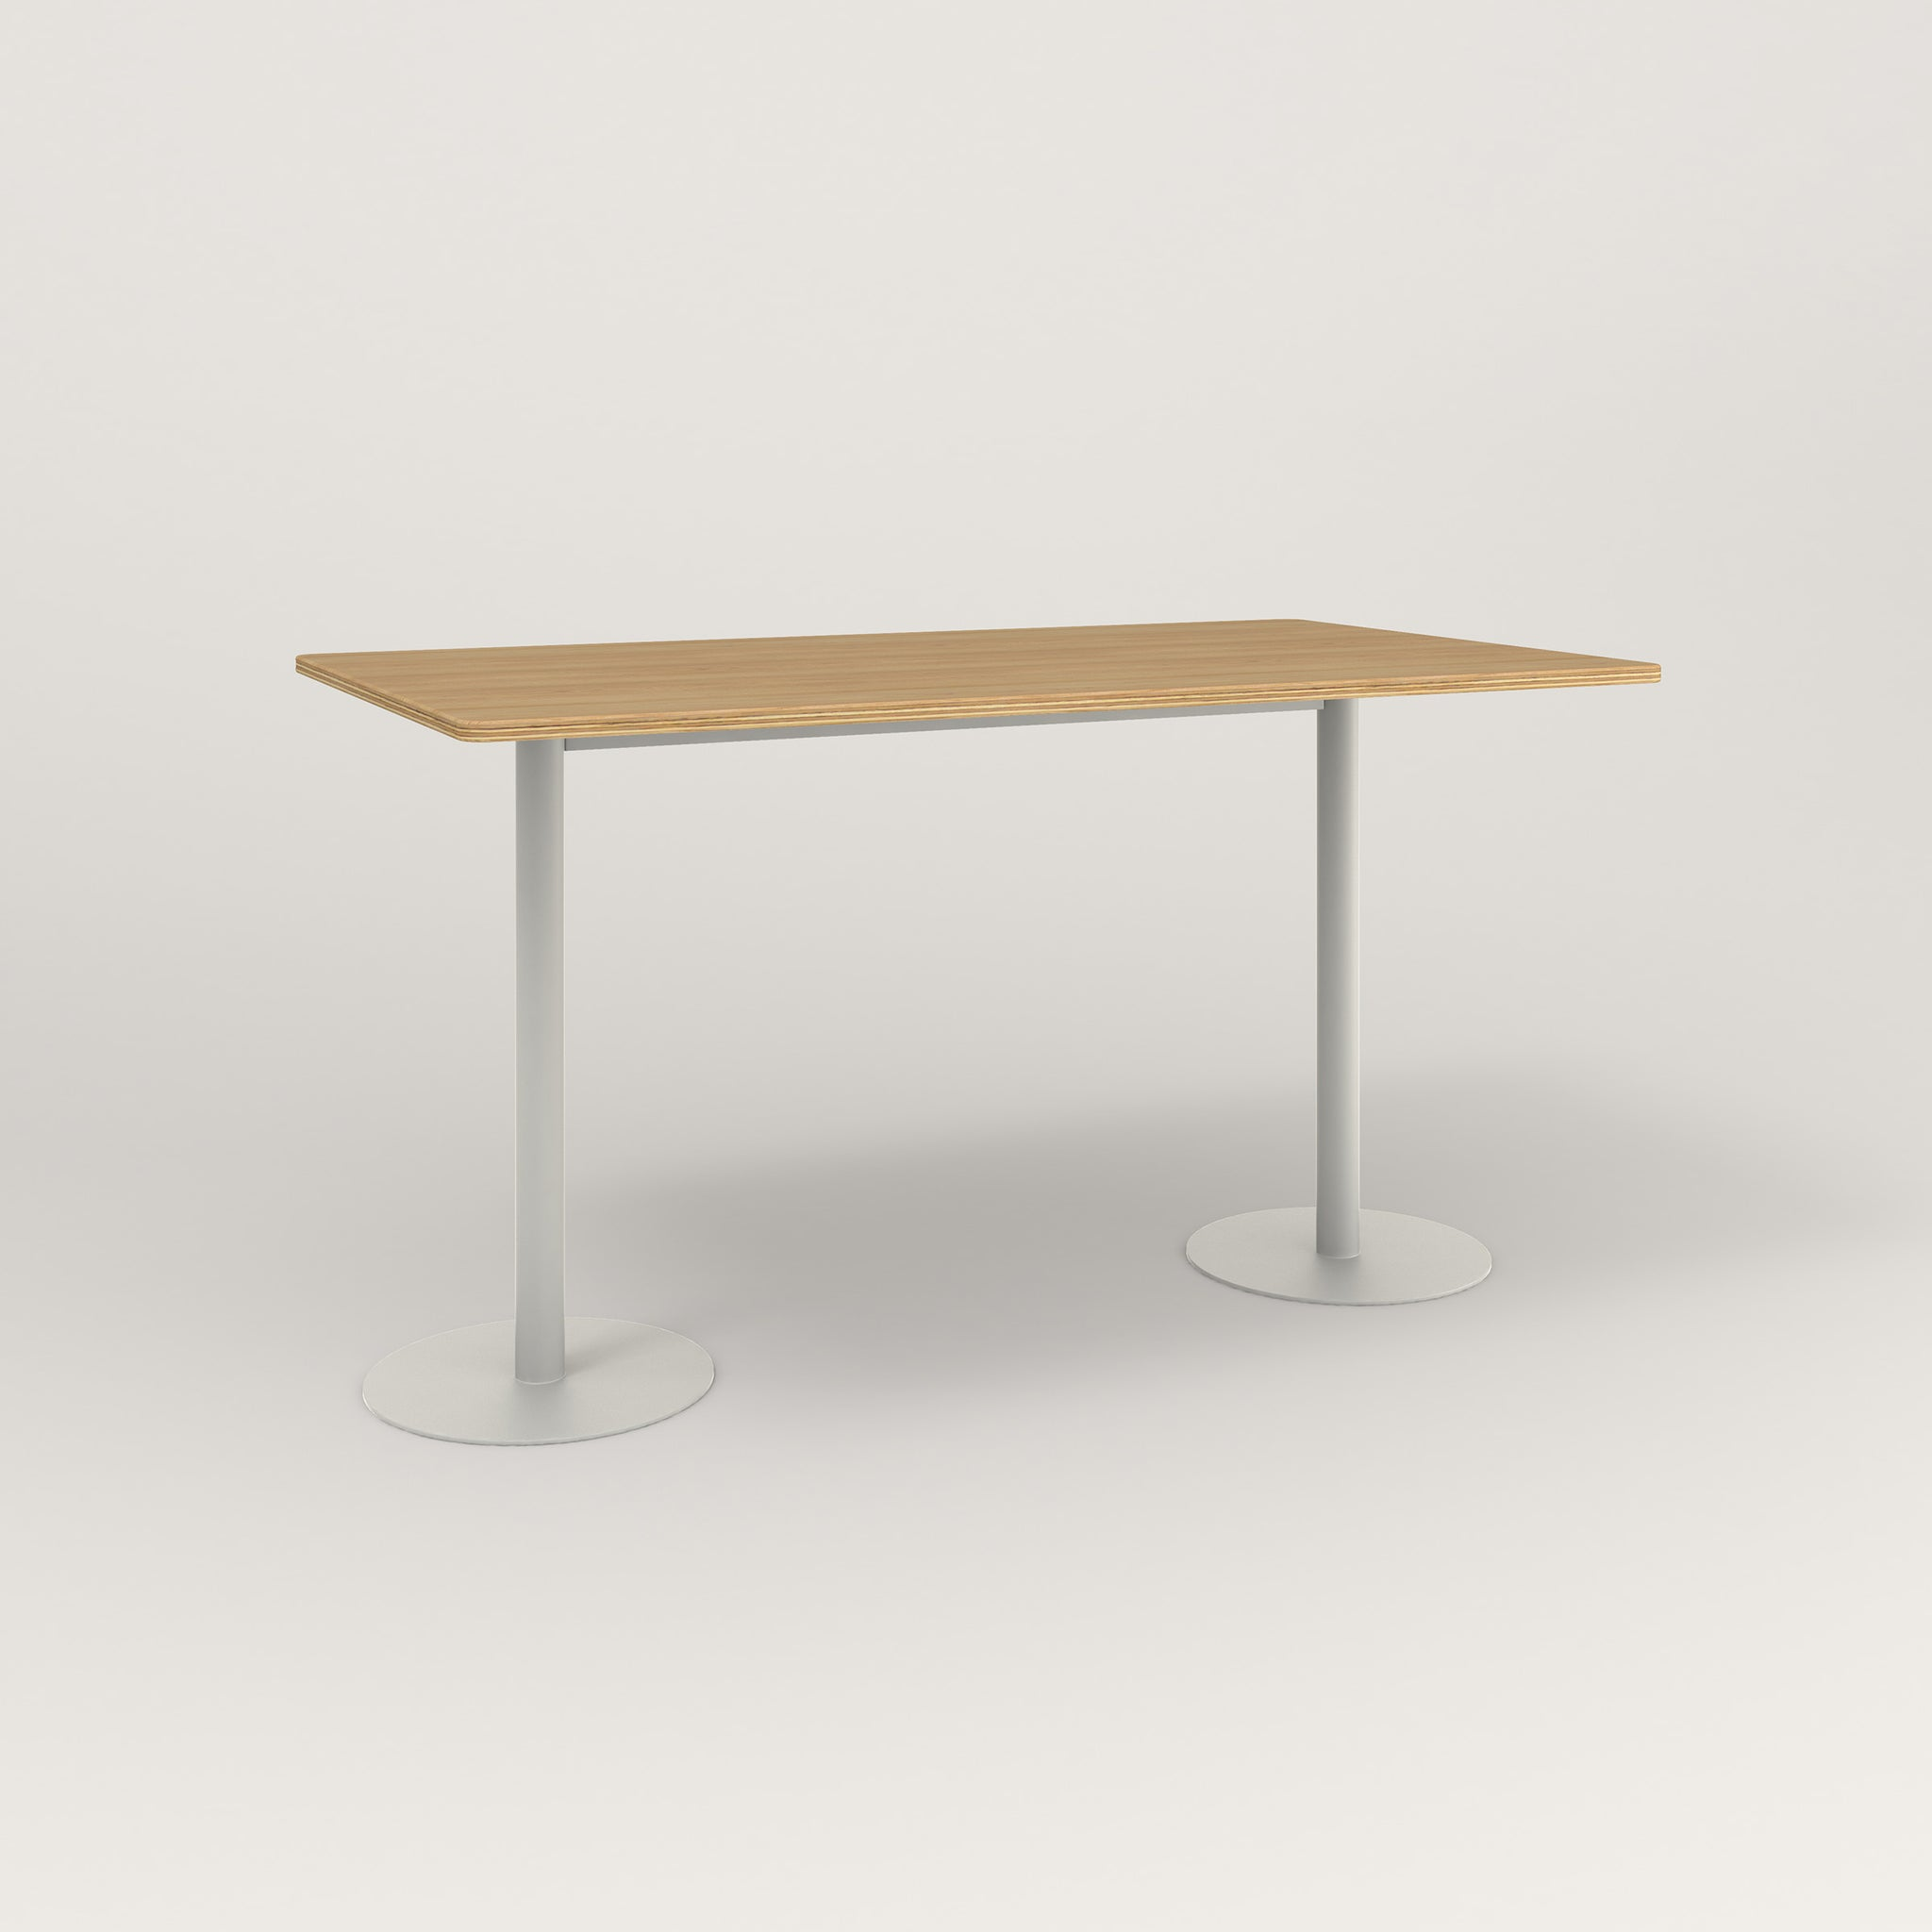 RAD Cafe Table, Rectangular Weighted Base T Leg in white oak europly and white powder coat.